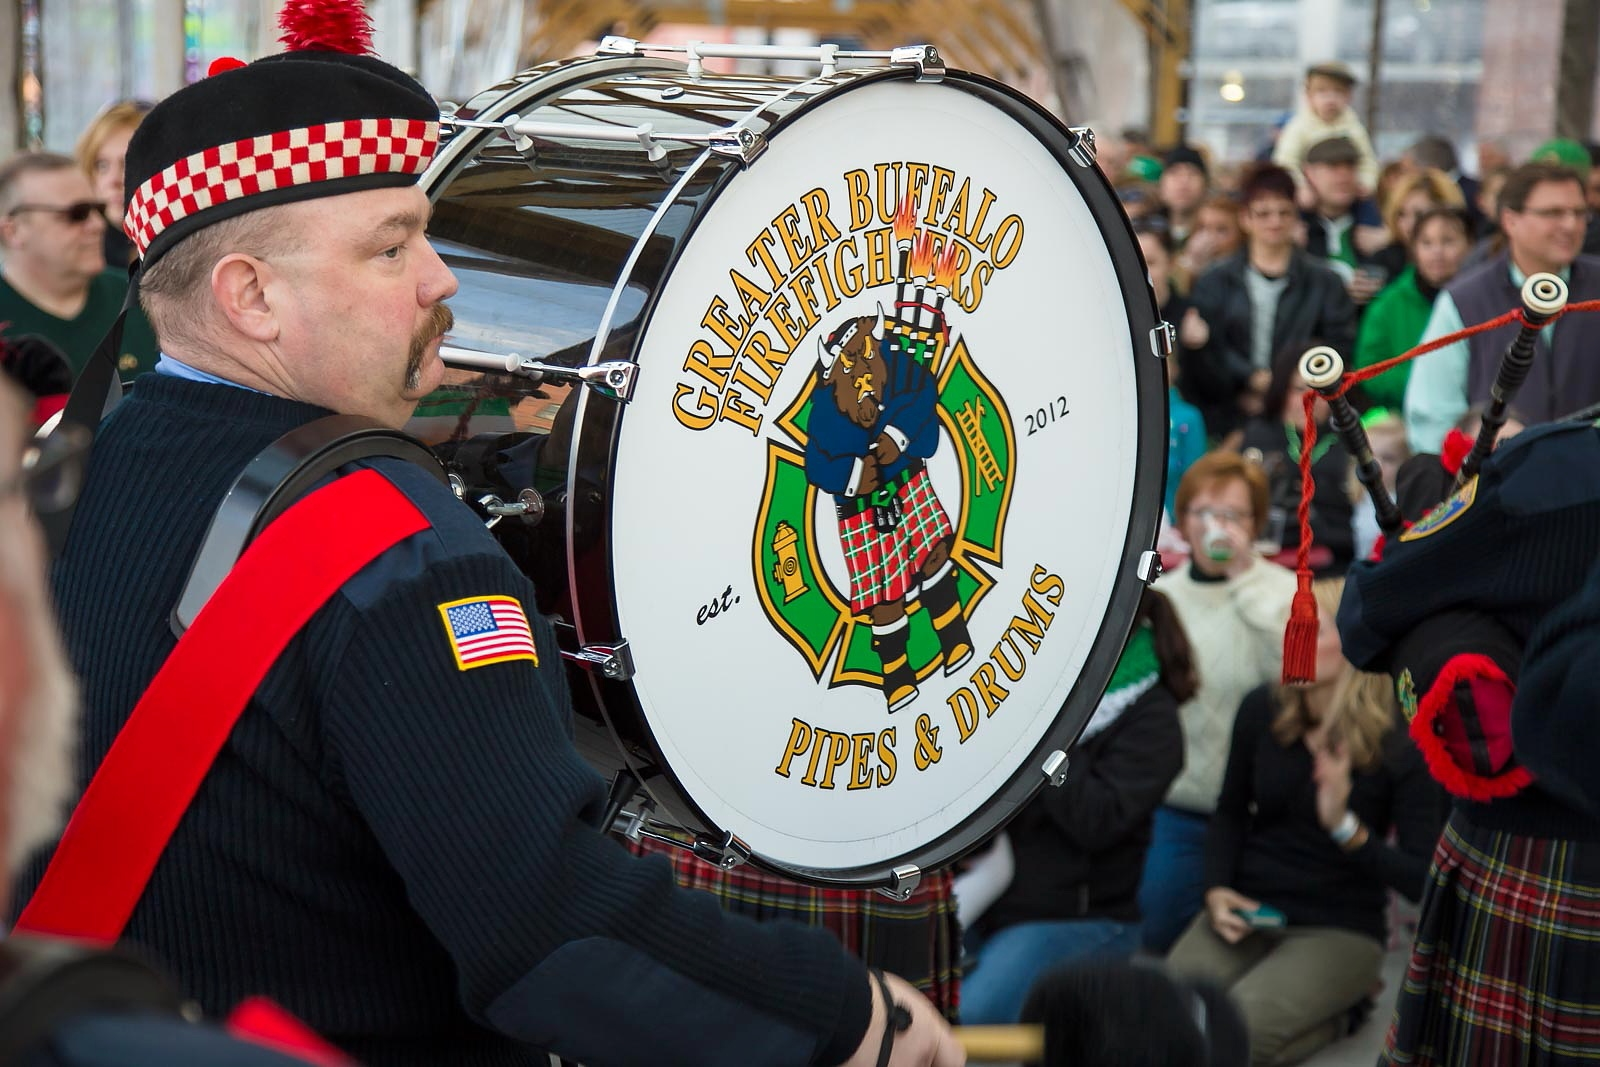 The Greater Buffalo Firefighters Pipes and Drum will again be part of Live at O'Larkin. (Don Nieman/Special to The News)